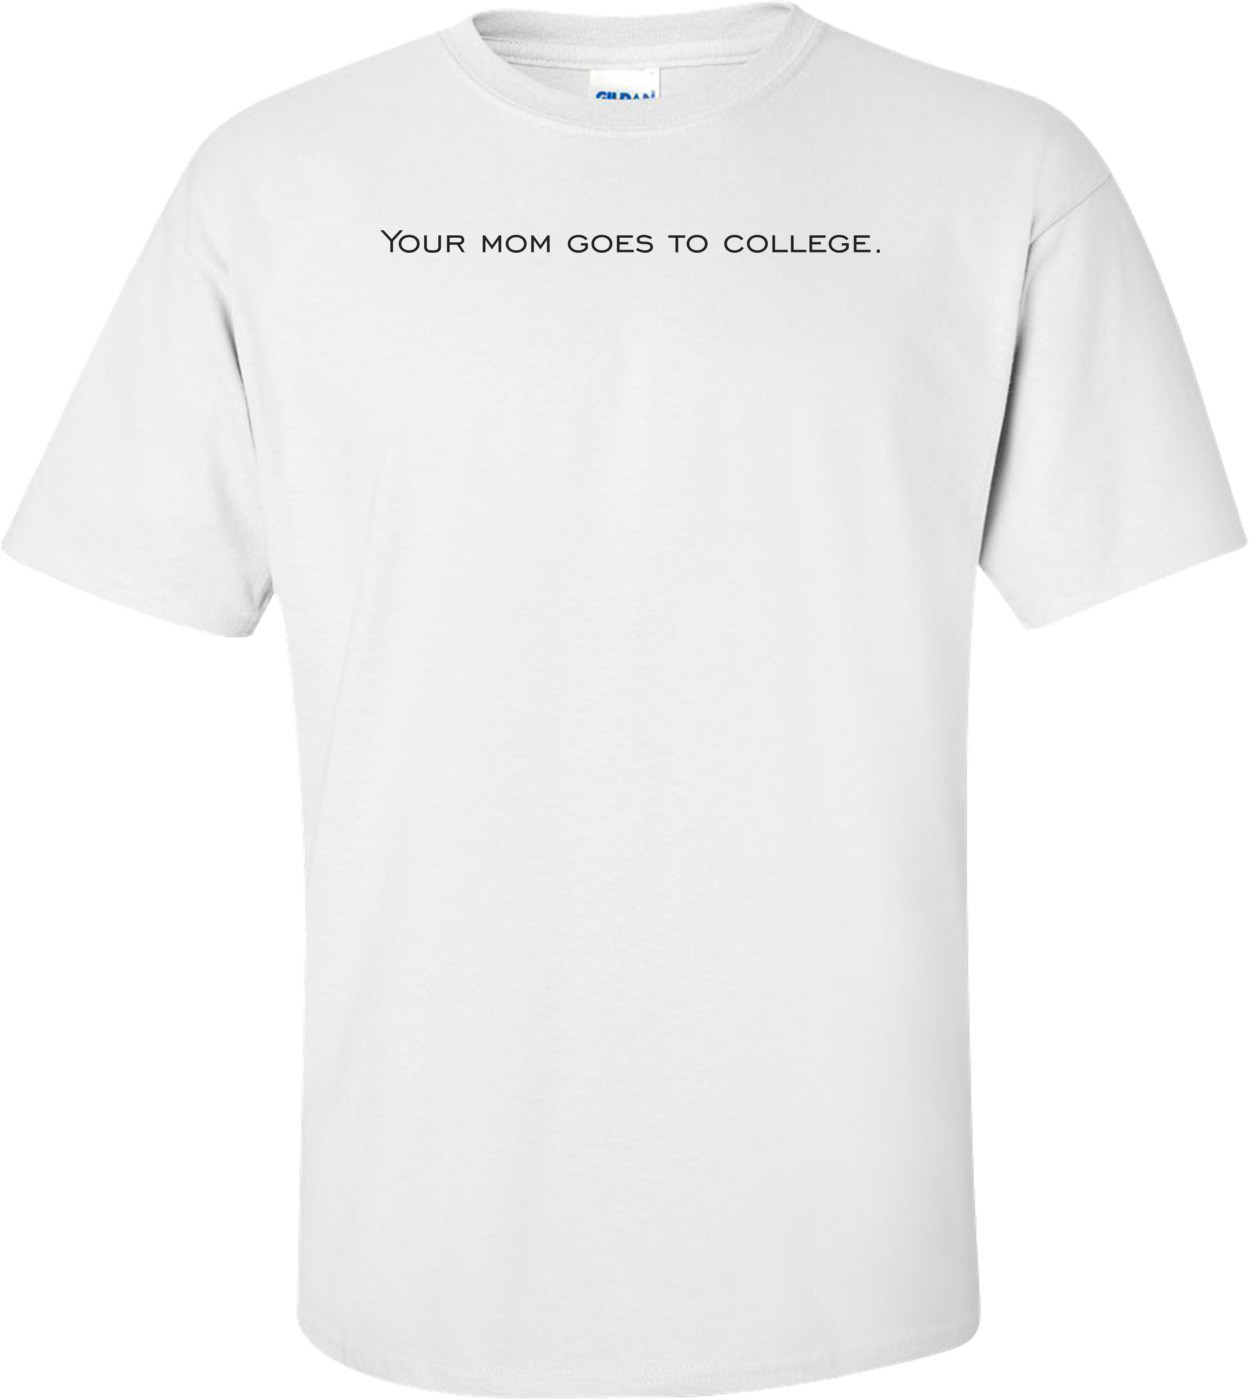 Your mom goes to college. Shirt